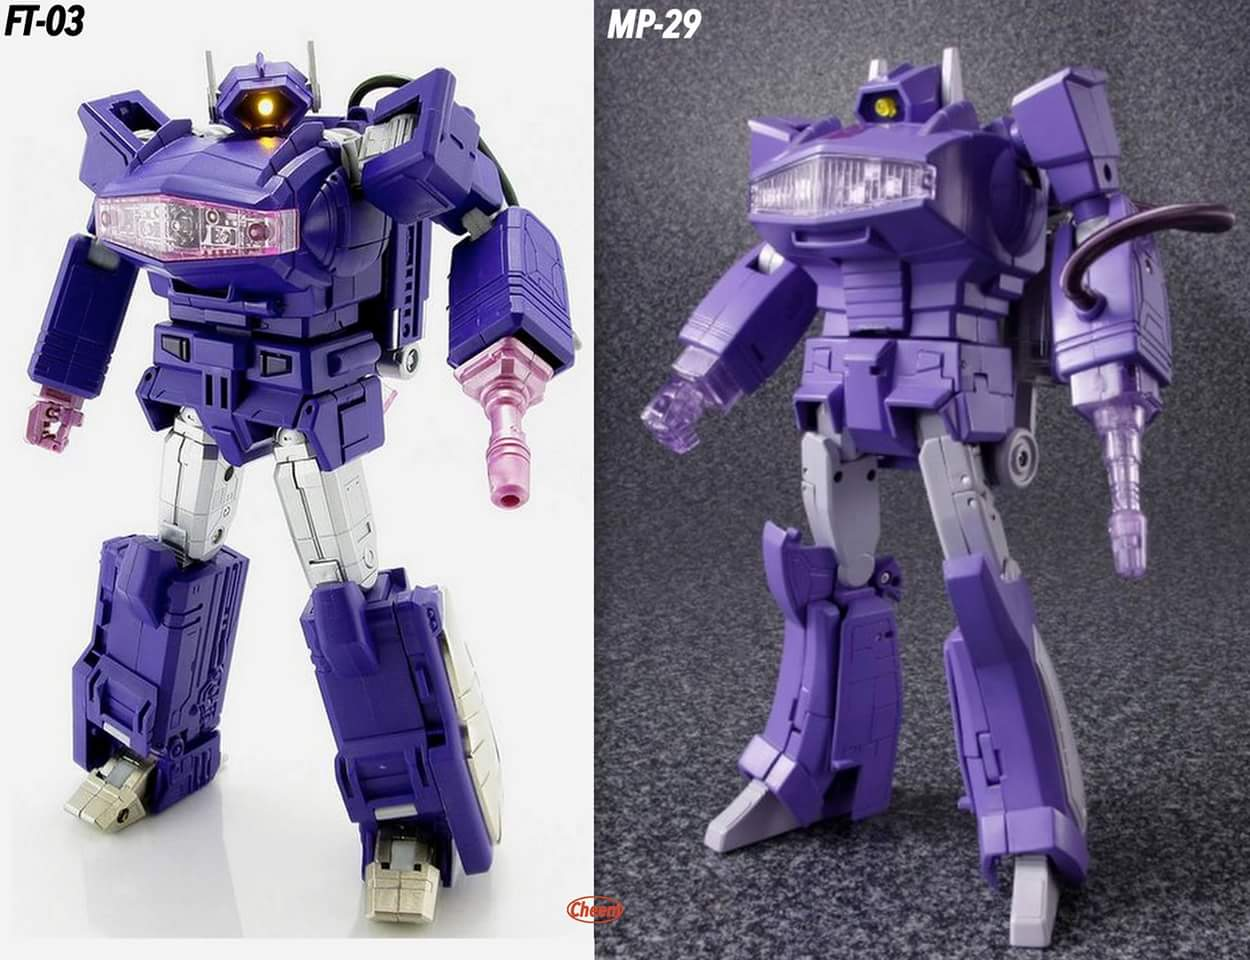 [Masterpiece] MP-29 Shockwave/Onde de Choc ZxVWfKvH